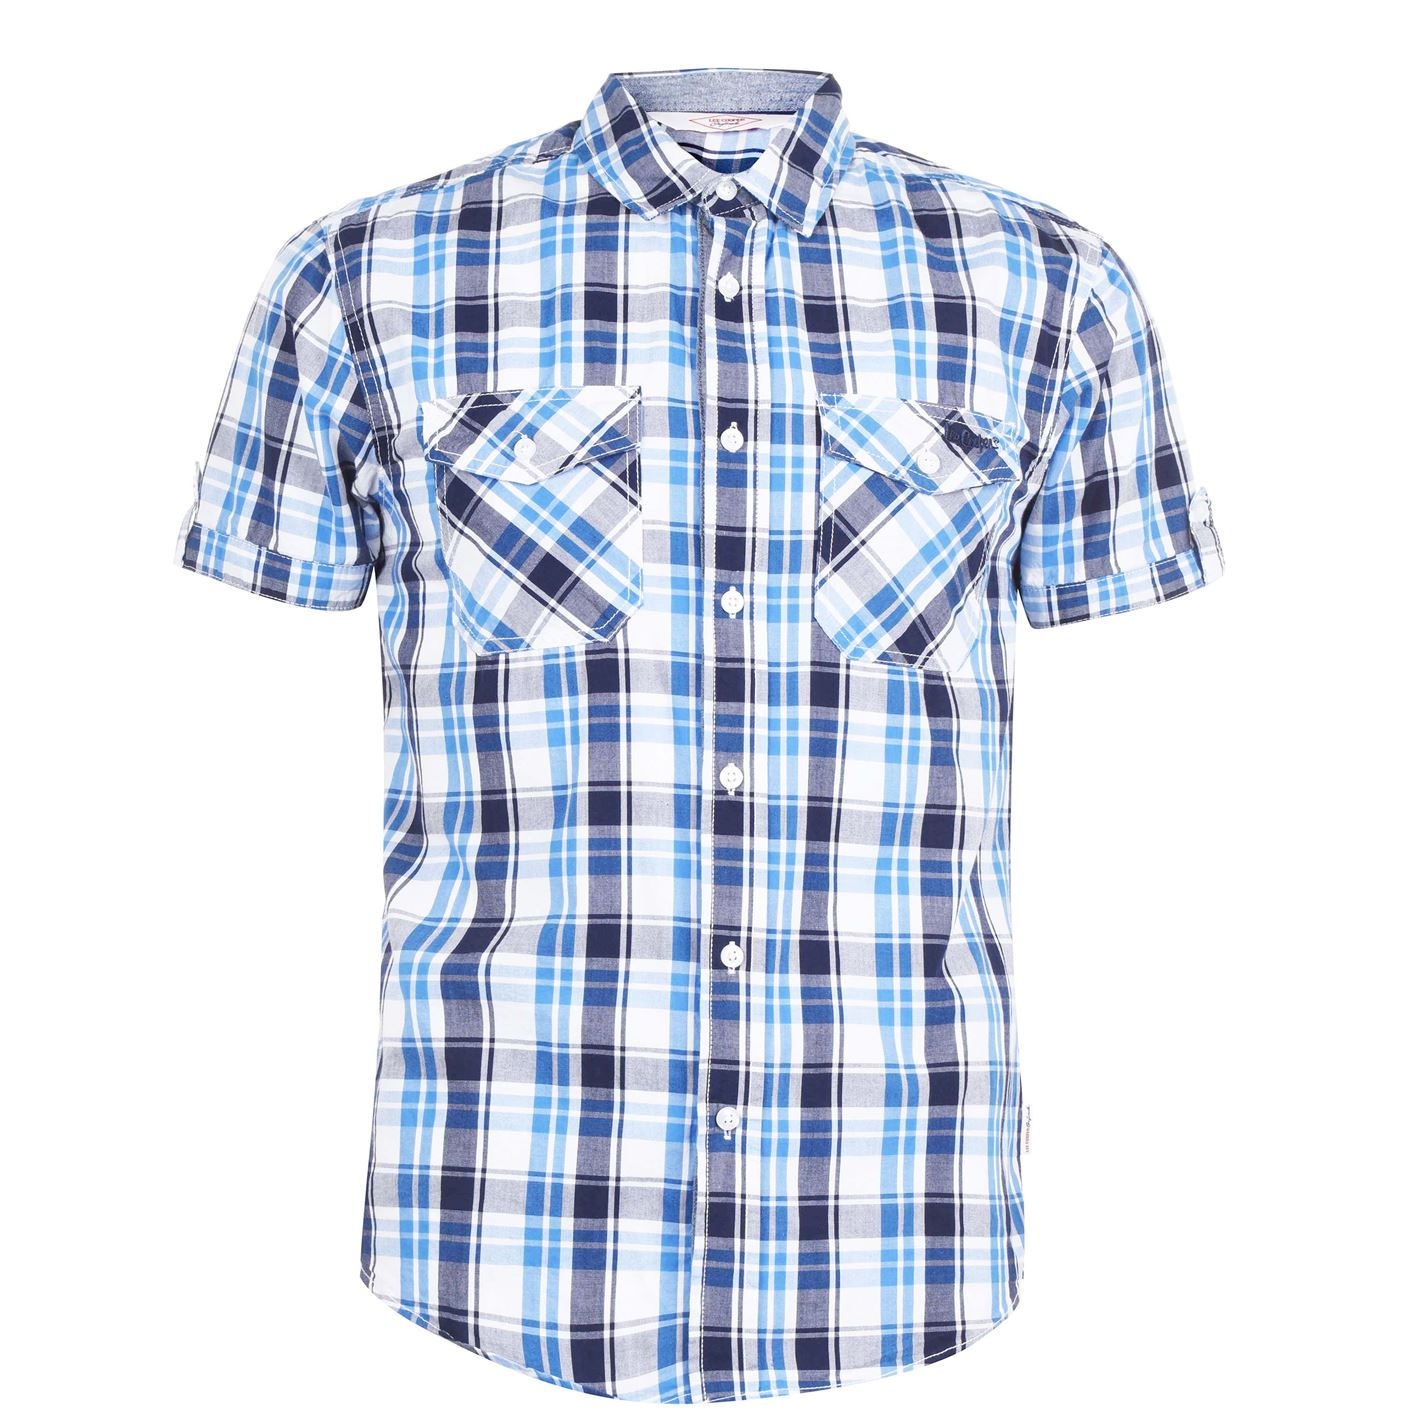 Lee Cooper SS Check Shirt Mens White/Navy/Blue